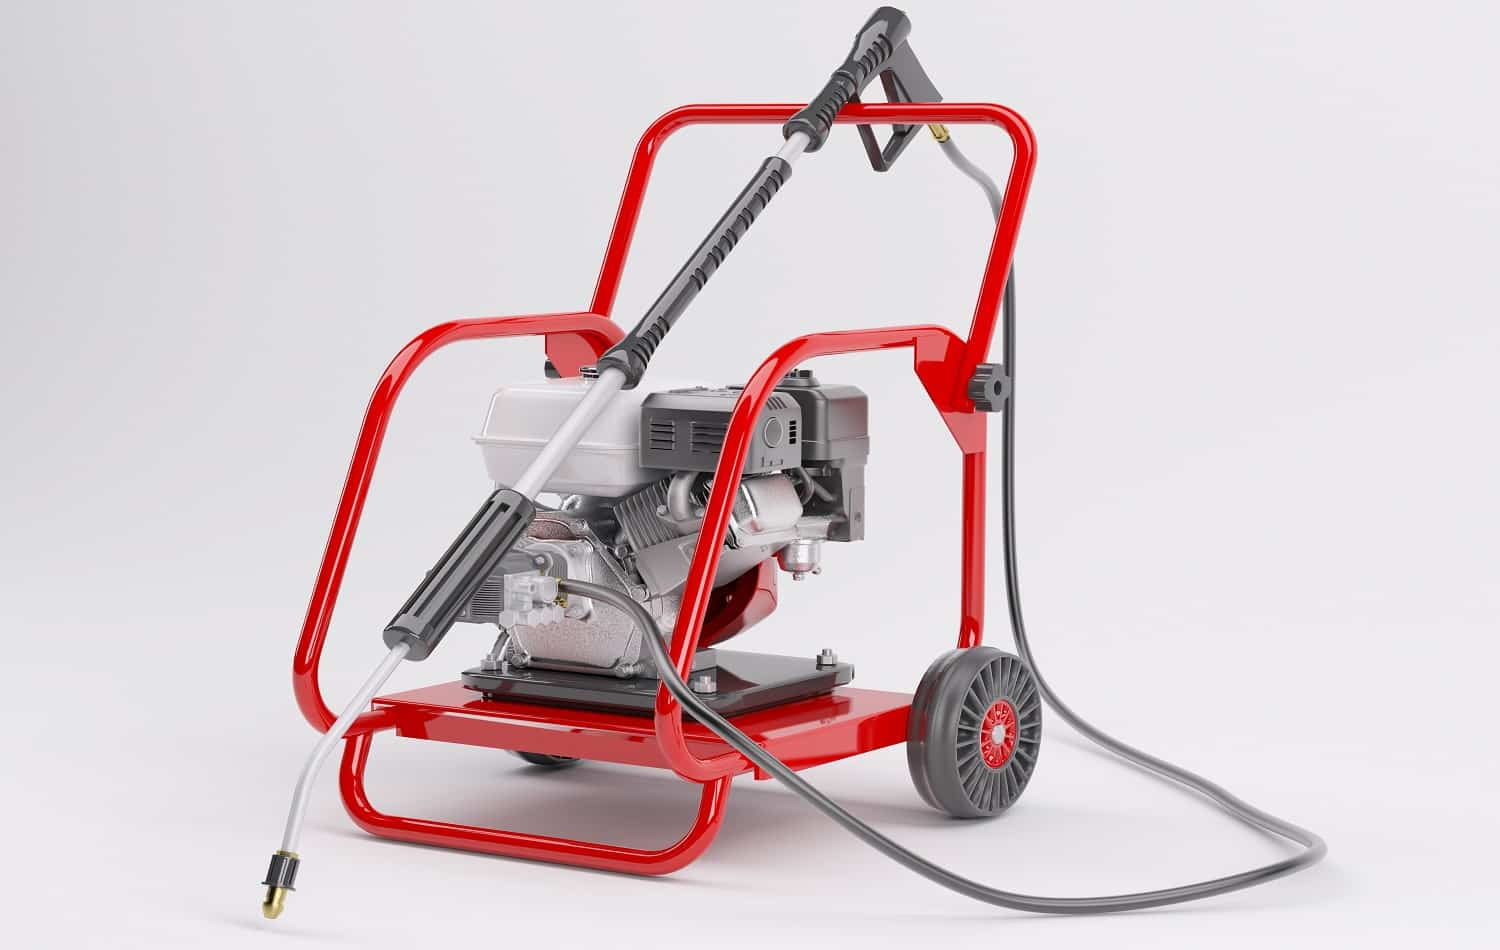 3d render of a pressure washer